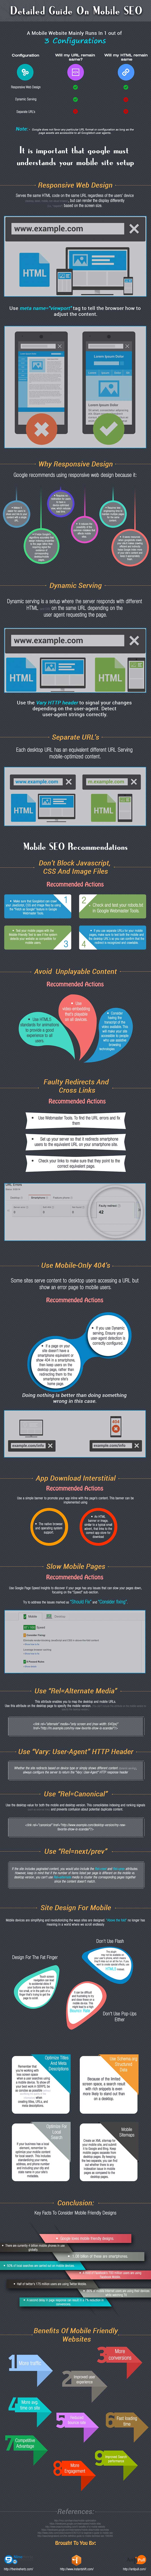 Detailed-Guide-to-mobile-seo-strategy-2015